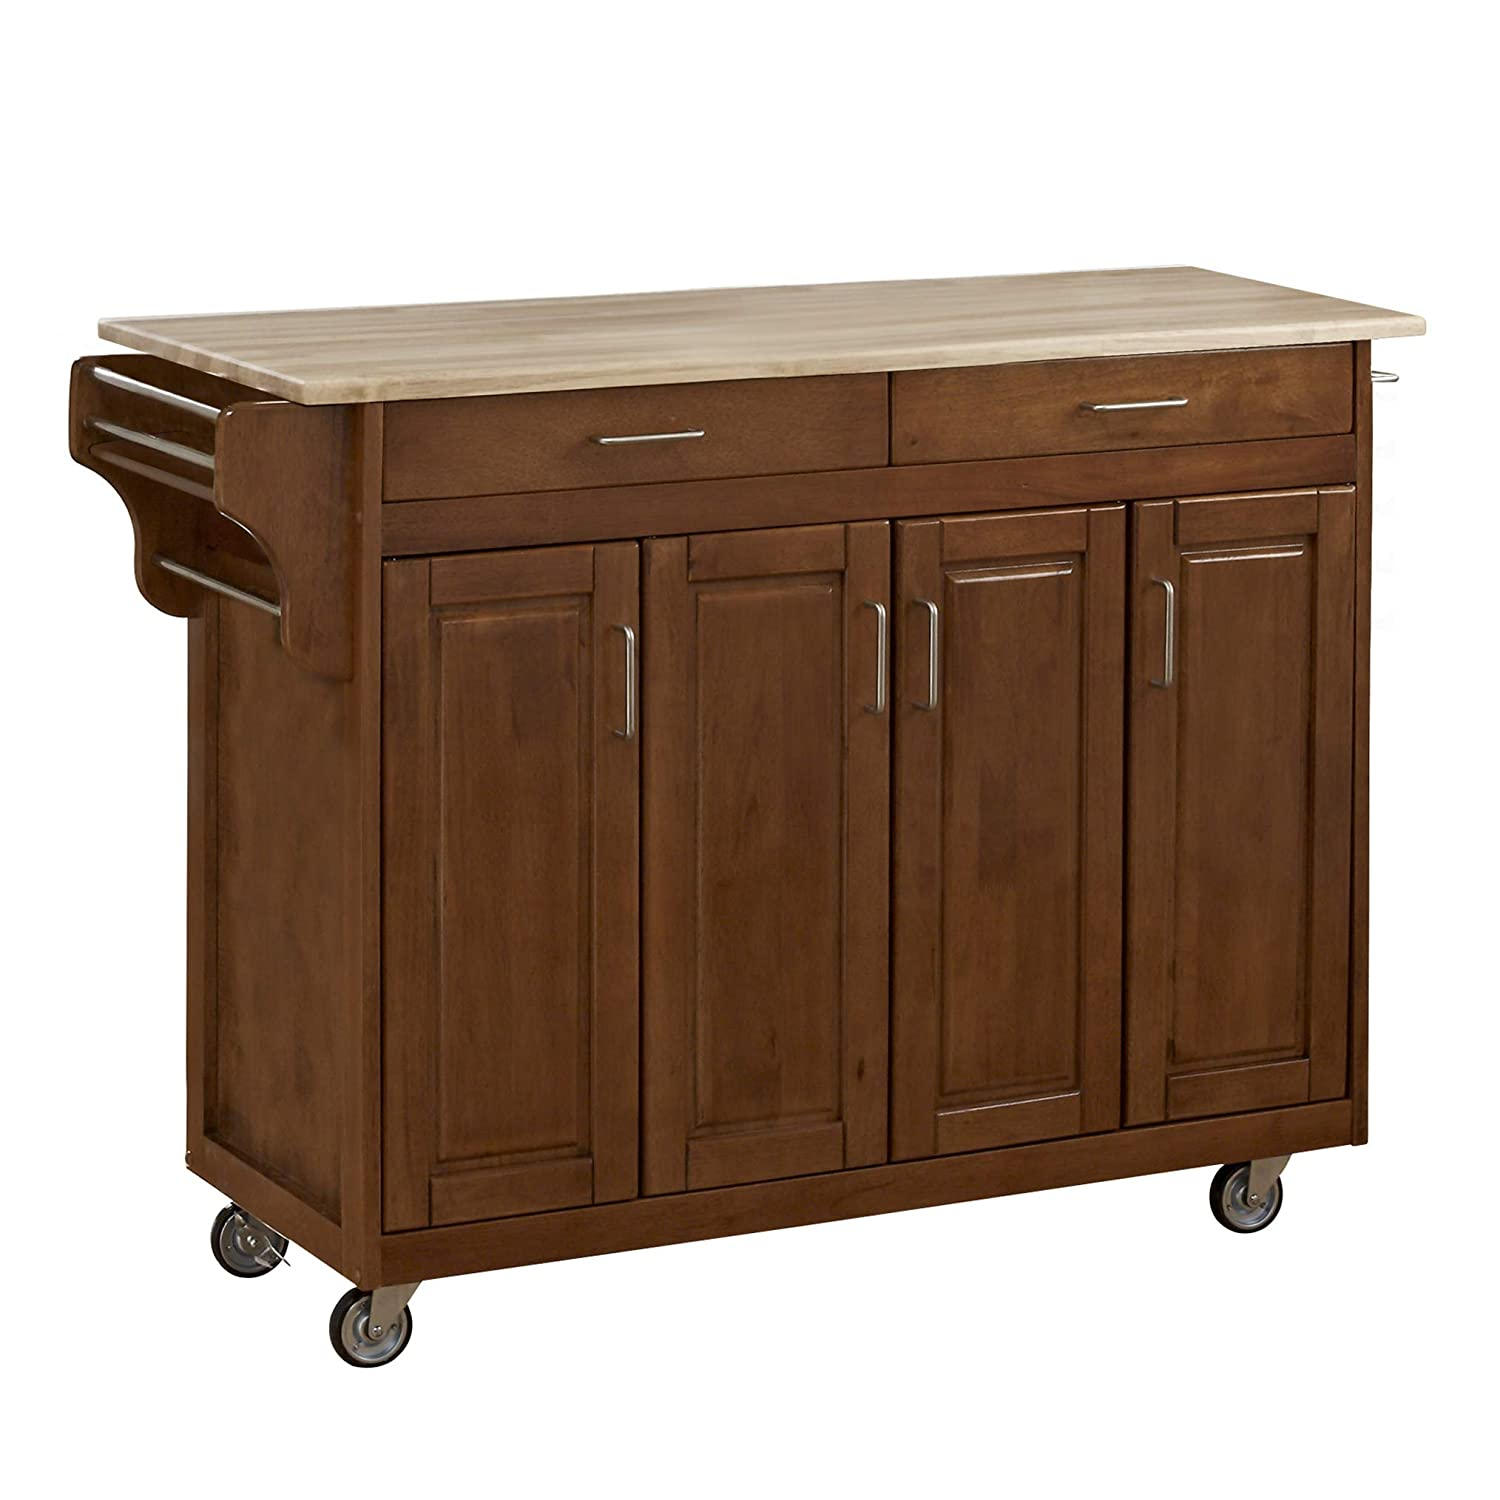 Create-a-Cart Cottage Oak 4 Door Cabinet with Wood Top by Home Styles